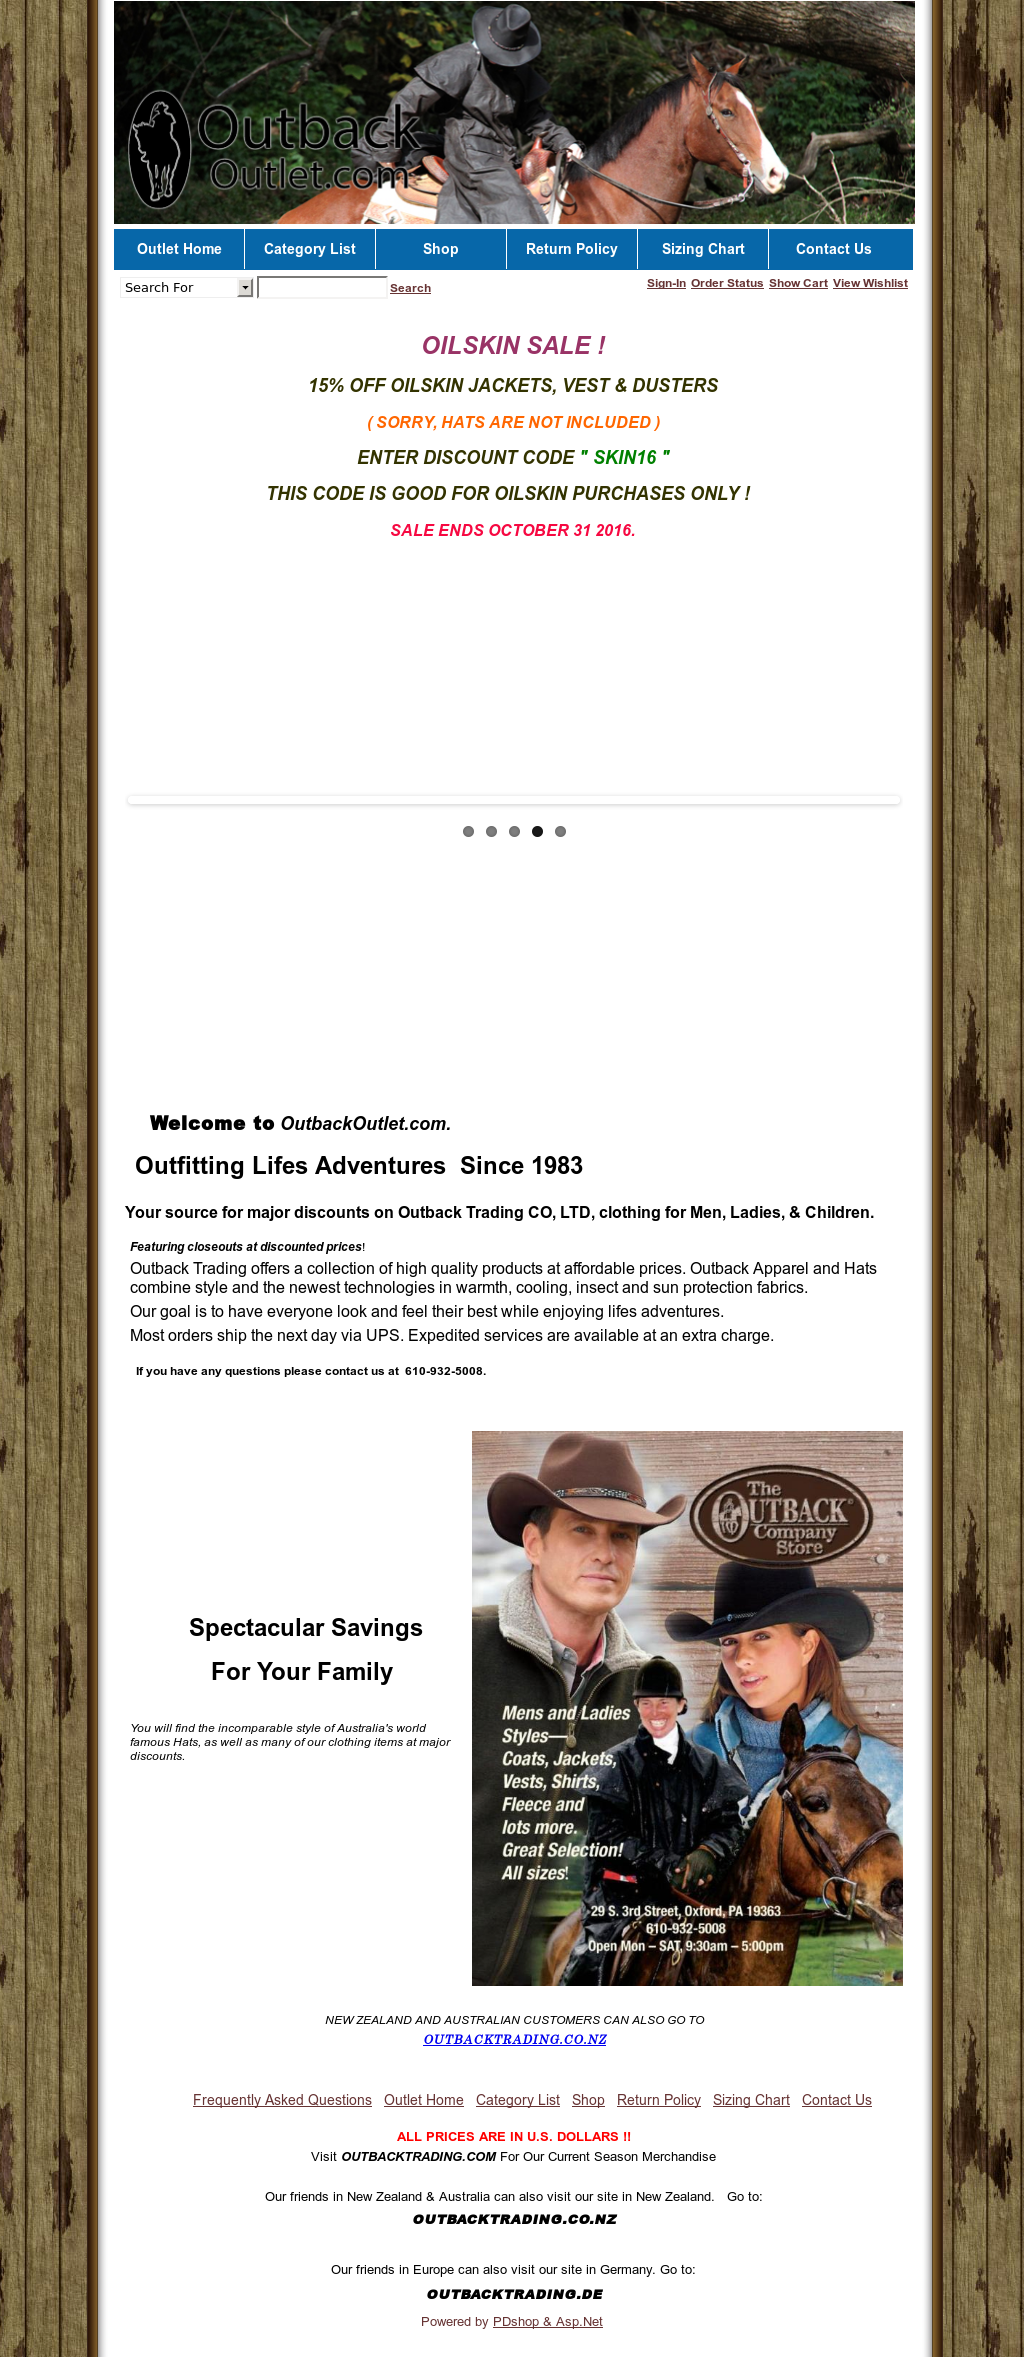 Outback Trading Company Competitors, Revenue and Employees